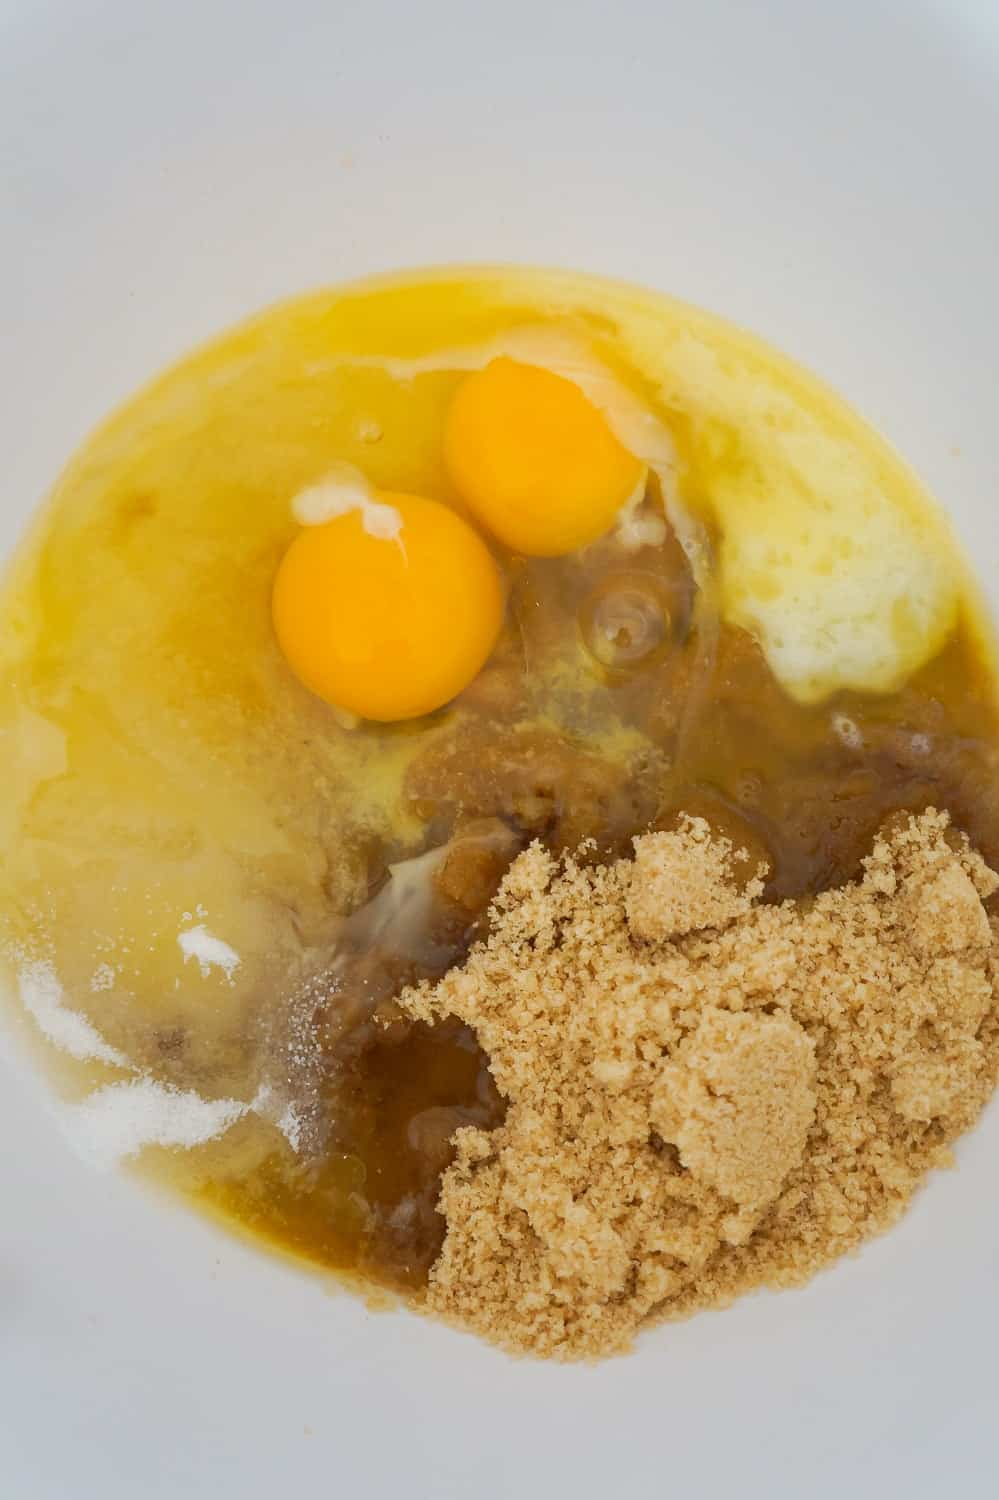 eggs, melted butter, brown sugar and granulated sugar in a mixing bowl